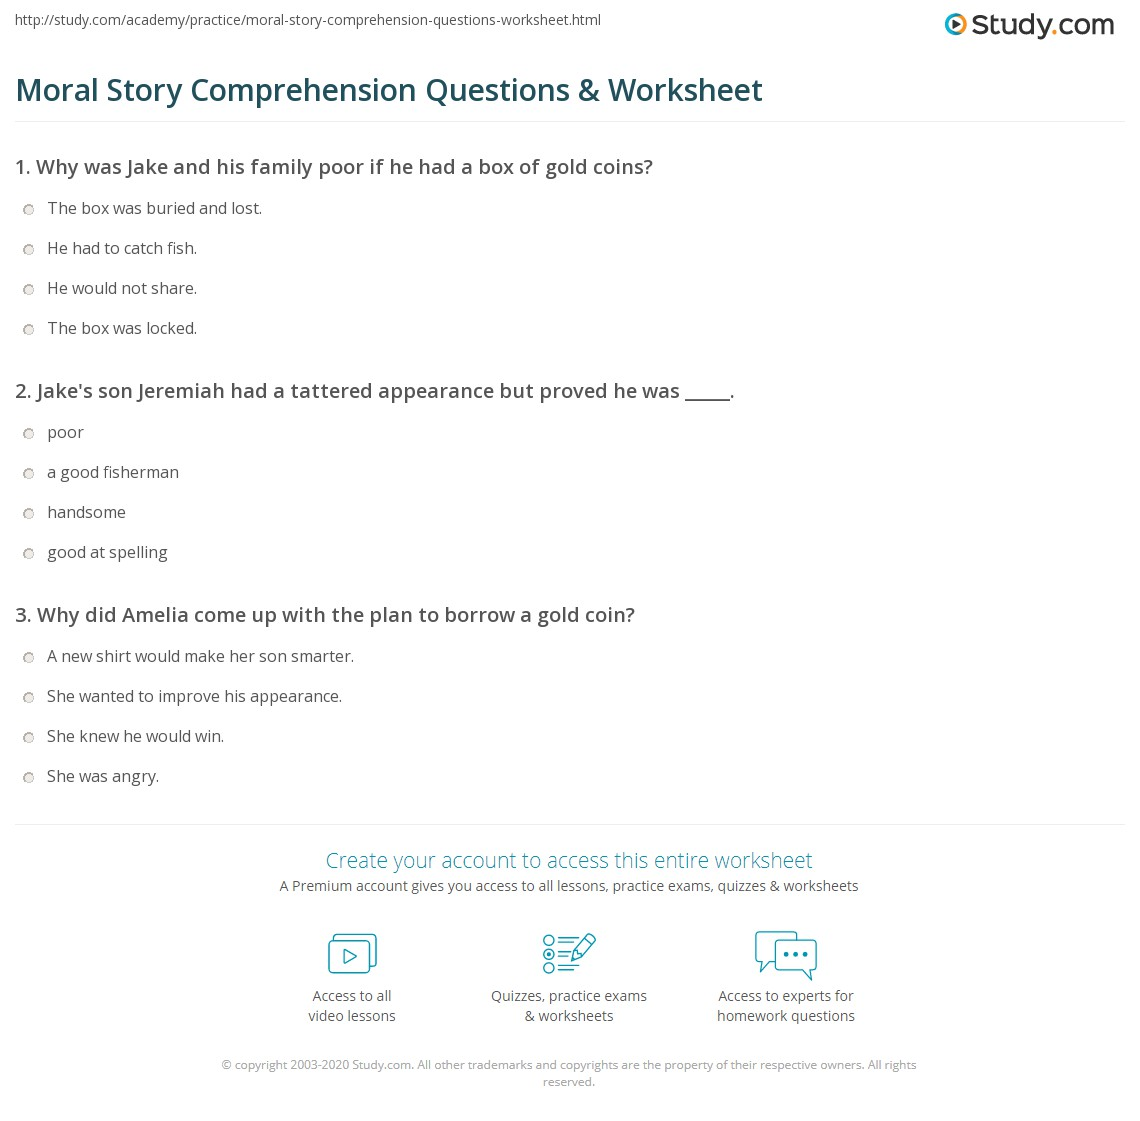 Moral Story Comprehension Questions & Worksheet | Study com